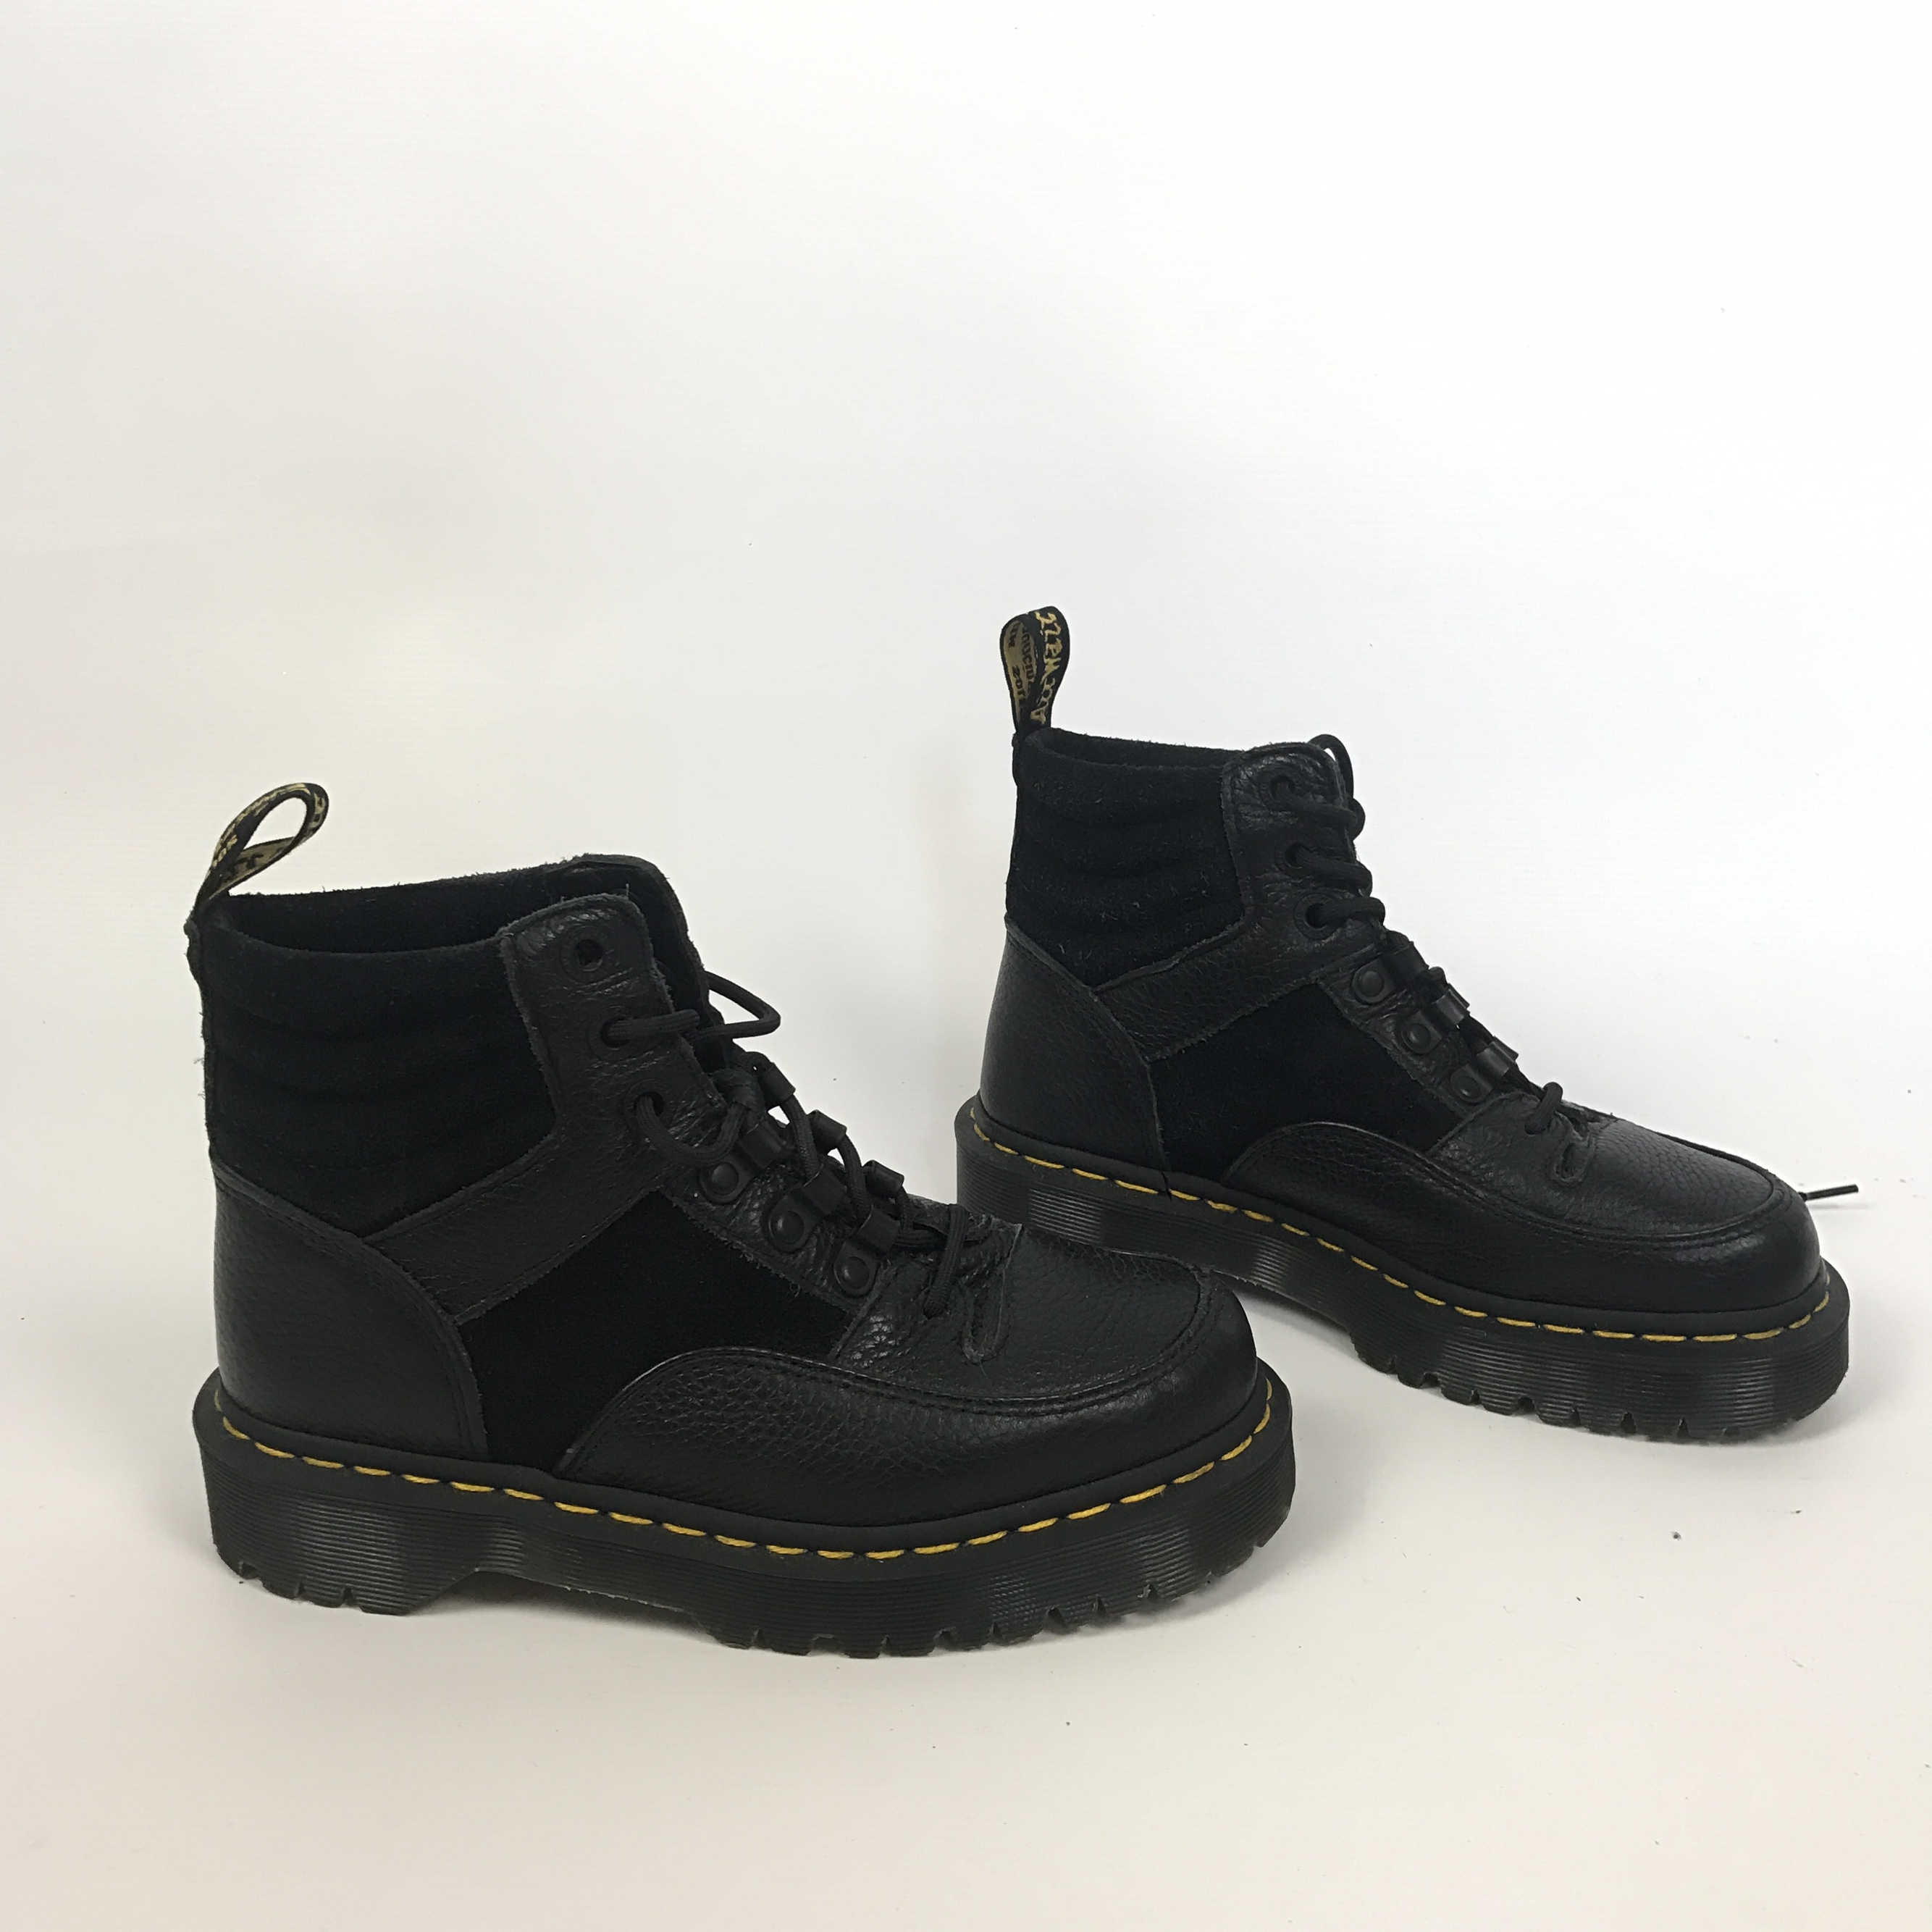 many choices of factory price 2018 shoes Dr martens DM ZUMA black suede/leather size 4,... - Depop